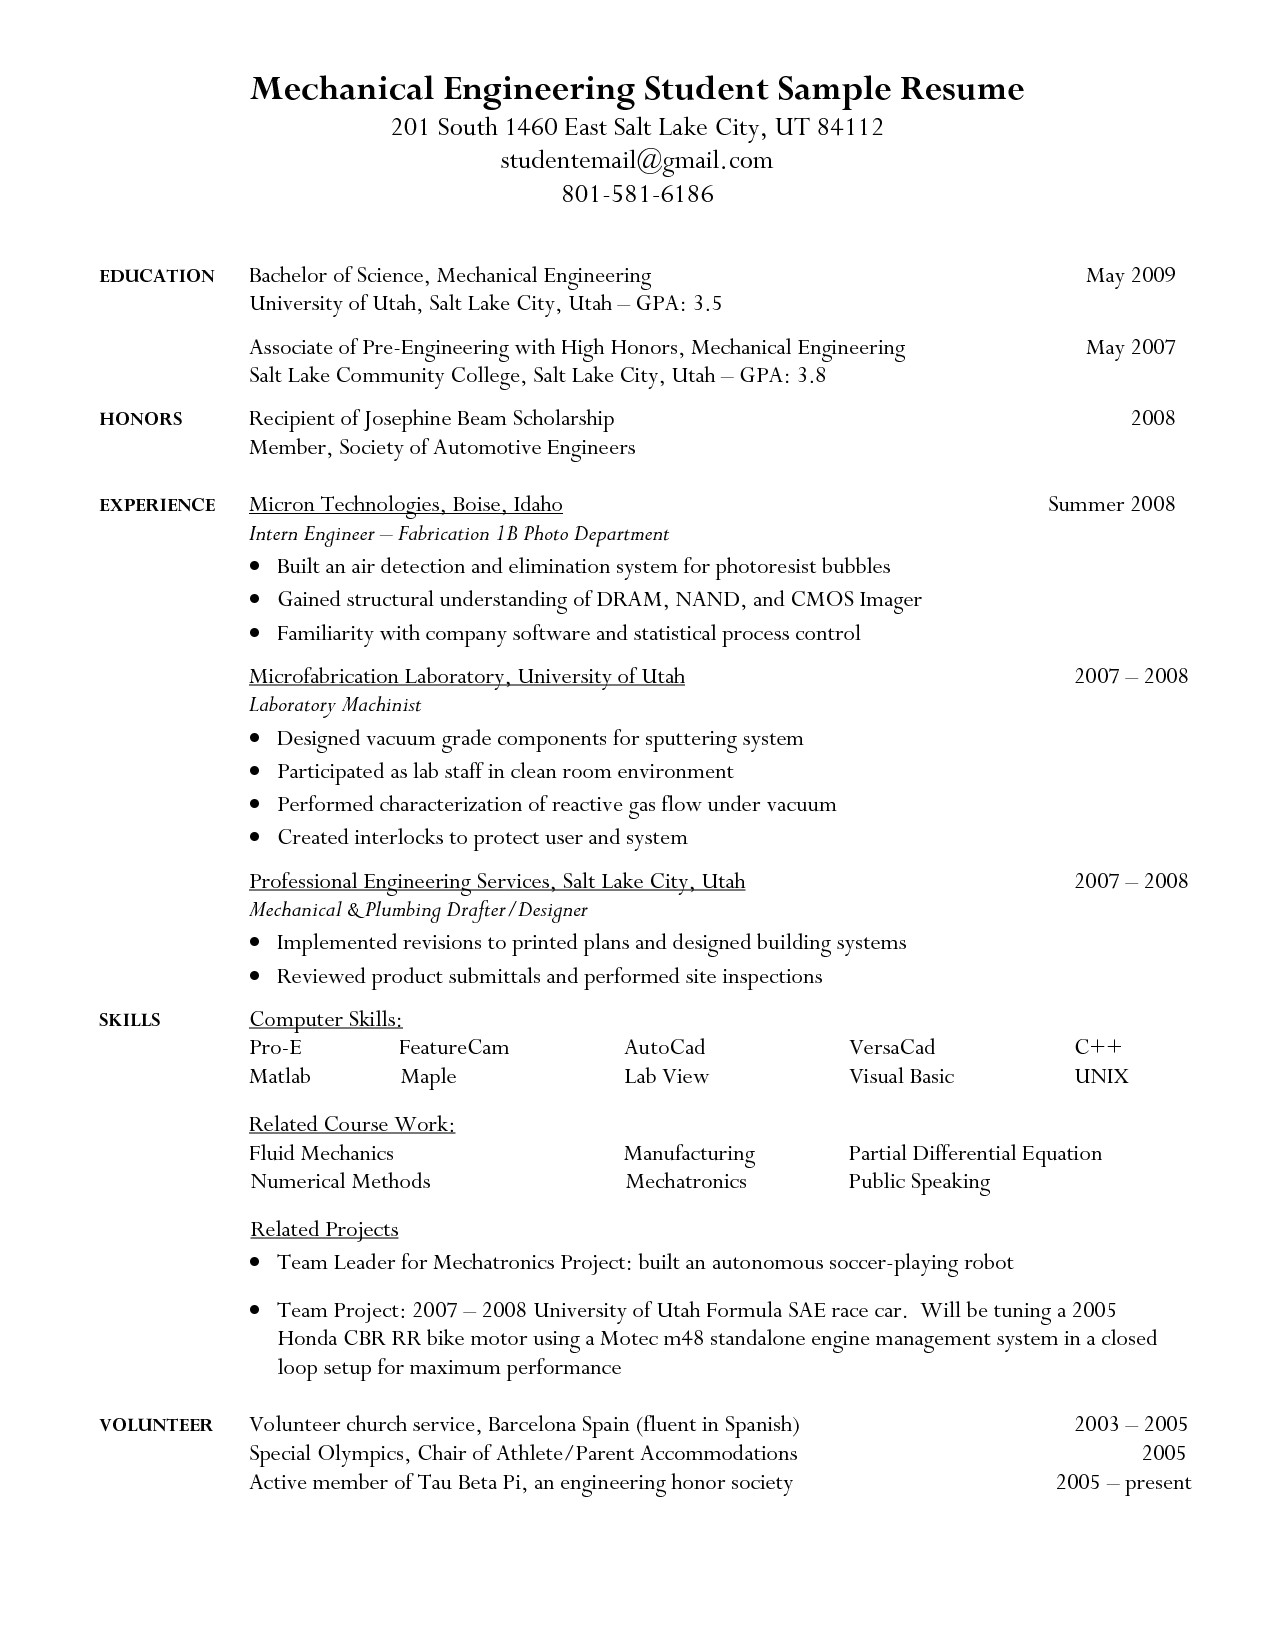 Sample Resume for Ece Engineering Students Engineering Student Resume Google Search Resumes